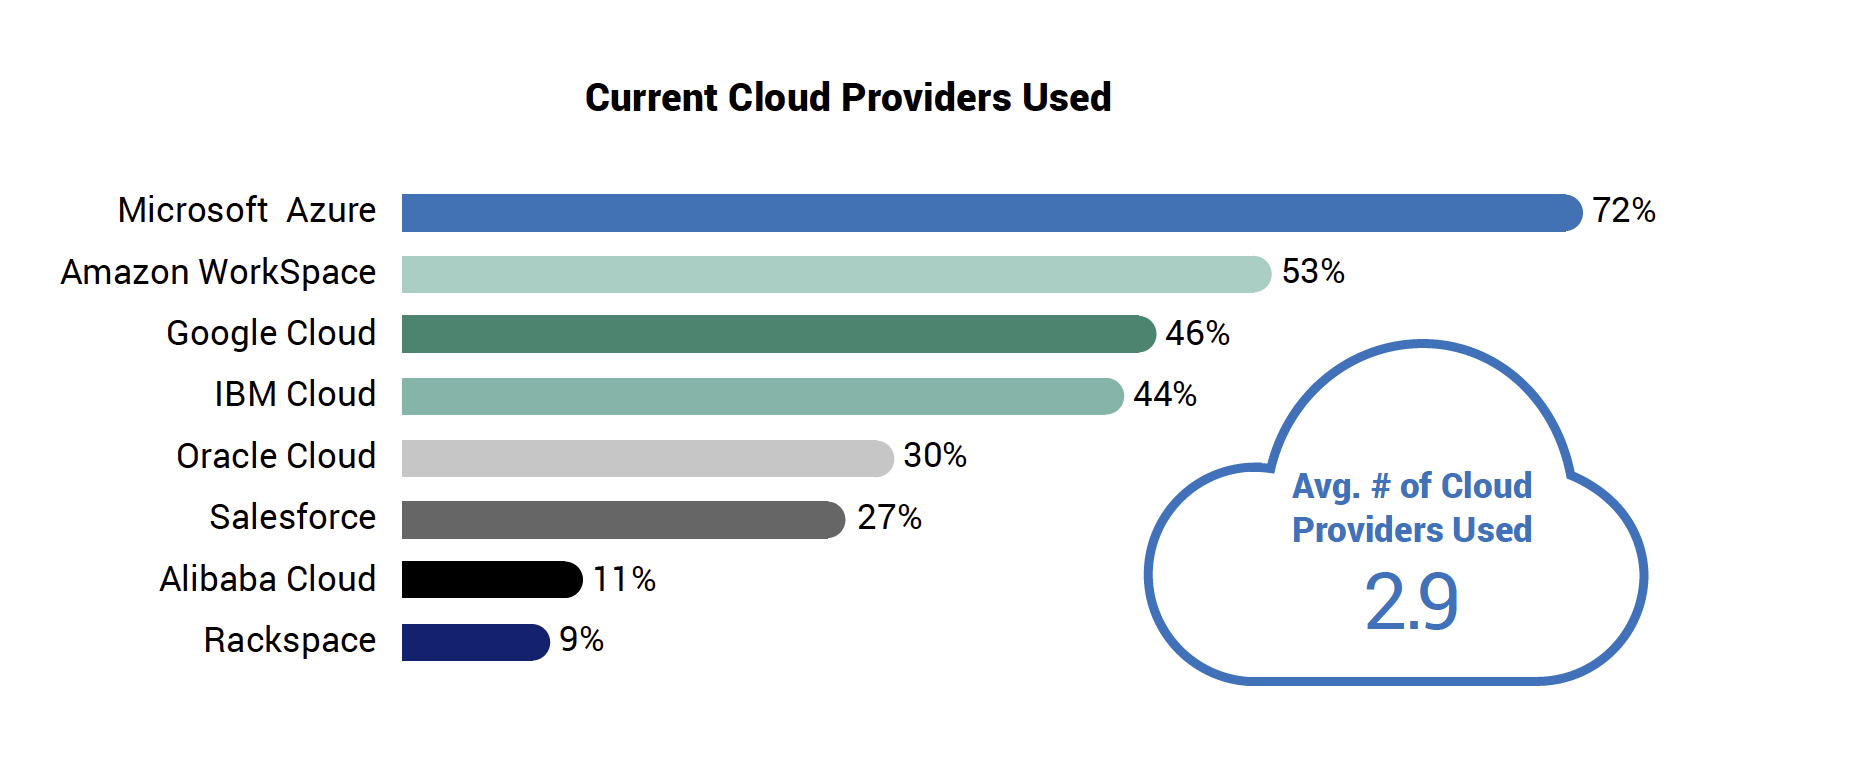 Current Cloud Providers Used